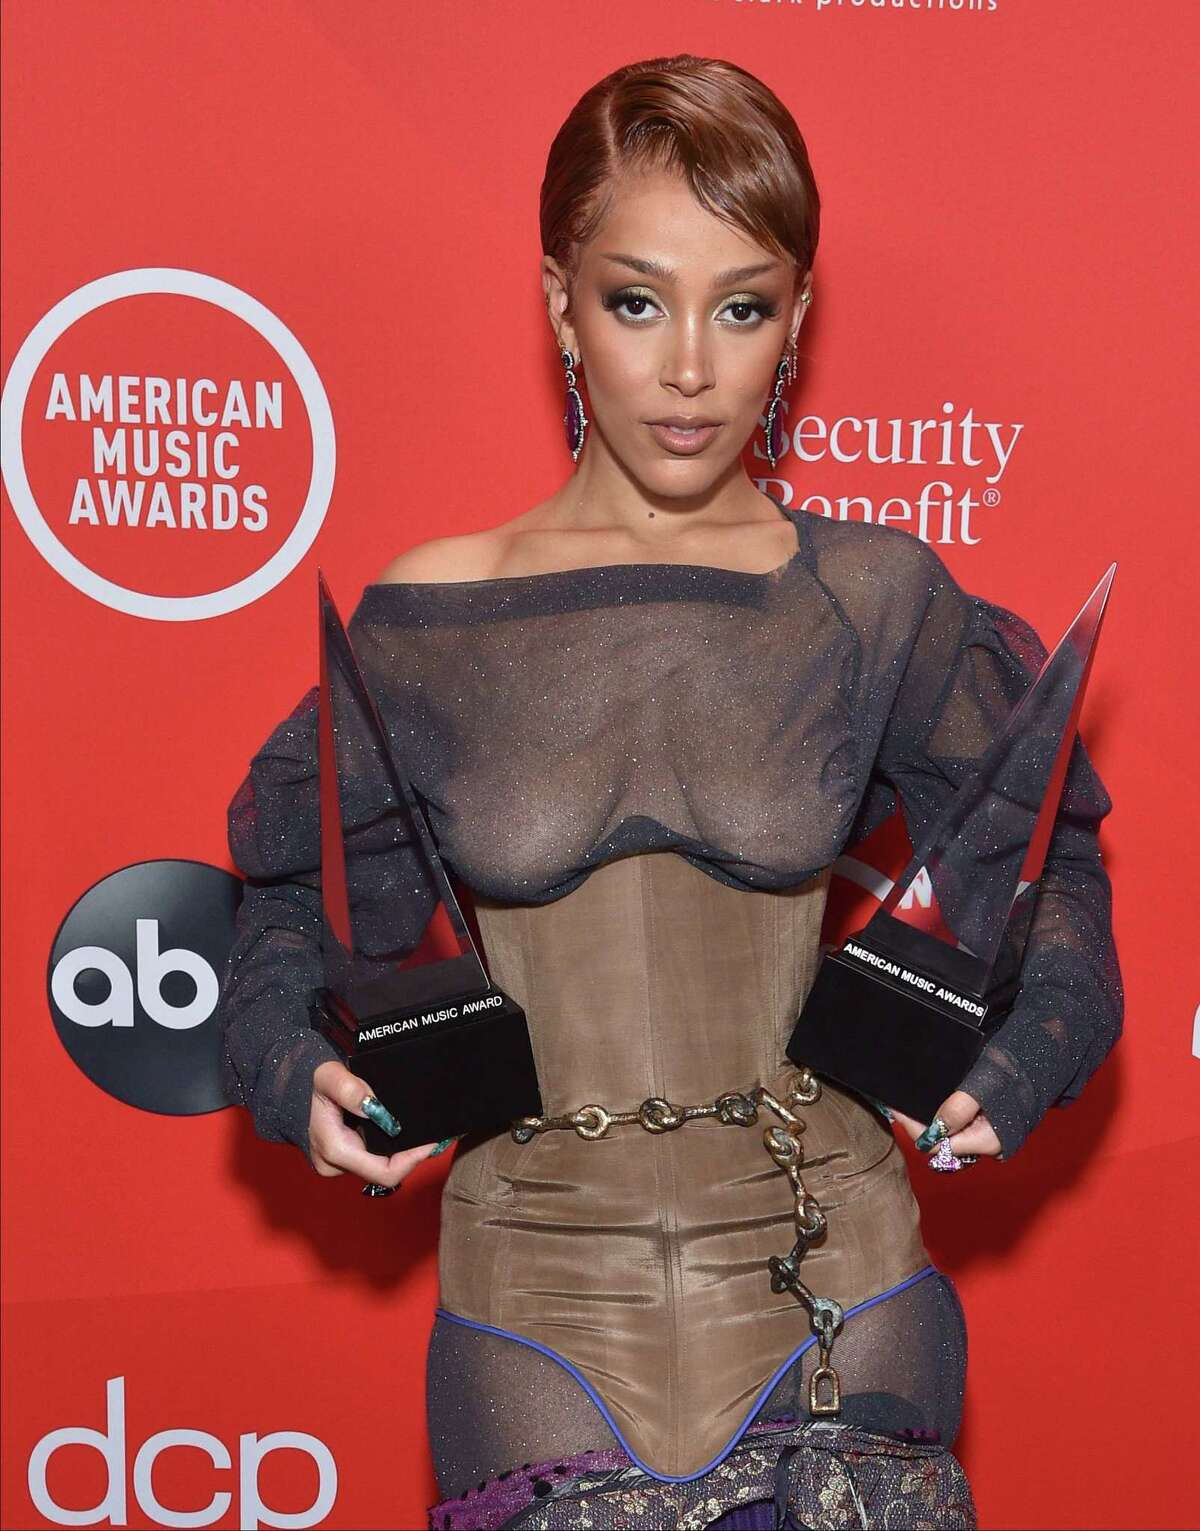 """In this handout image courtesy of ABC singer Doja Cat poses with her awards for Favorite Female Artist Soul/R&B and New Artist of the Year during the 2020 American Music Awards aired from the Microsoft theatre on November 22, 2020 in Los Angeles. (Photo by ABC / American Broadcasting Companies, Inc. / ABC / AFP) / RESTRICTED TO EDITORIAL USE - MANDATORY CREDIT """"AFP PHOTO / Courtesy of ABC"""" - NO MARKETING - NO ADVERTISING CAMPAIGNS - DISTRIBUTED AS A SERVICE TO CLIENTS"""